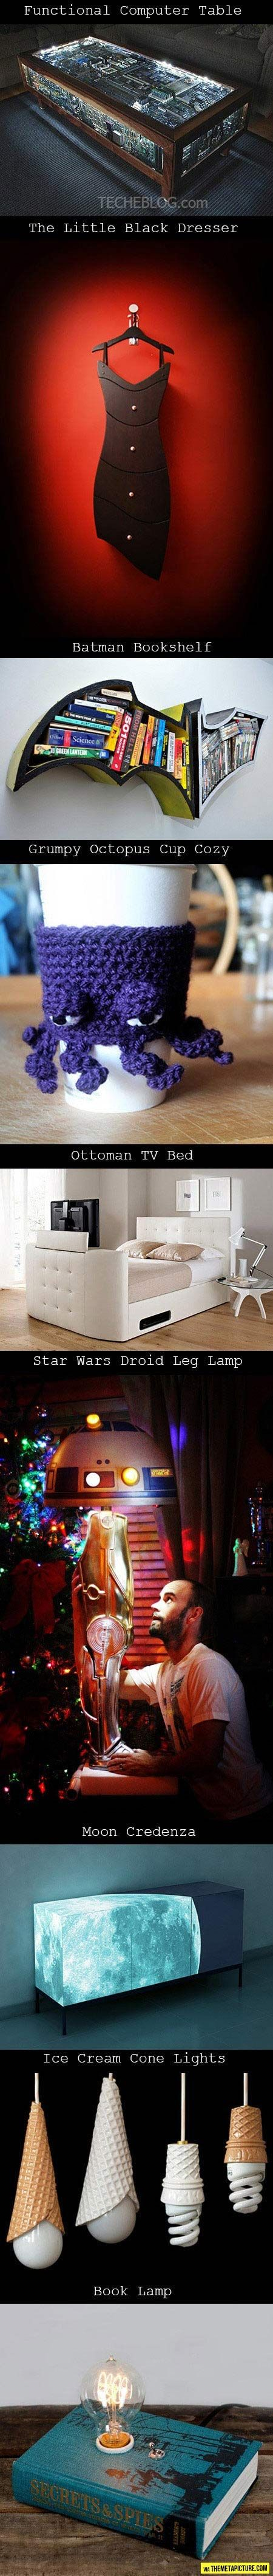 For the geek home…I need the coffee maker!